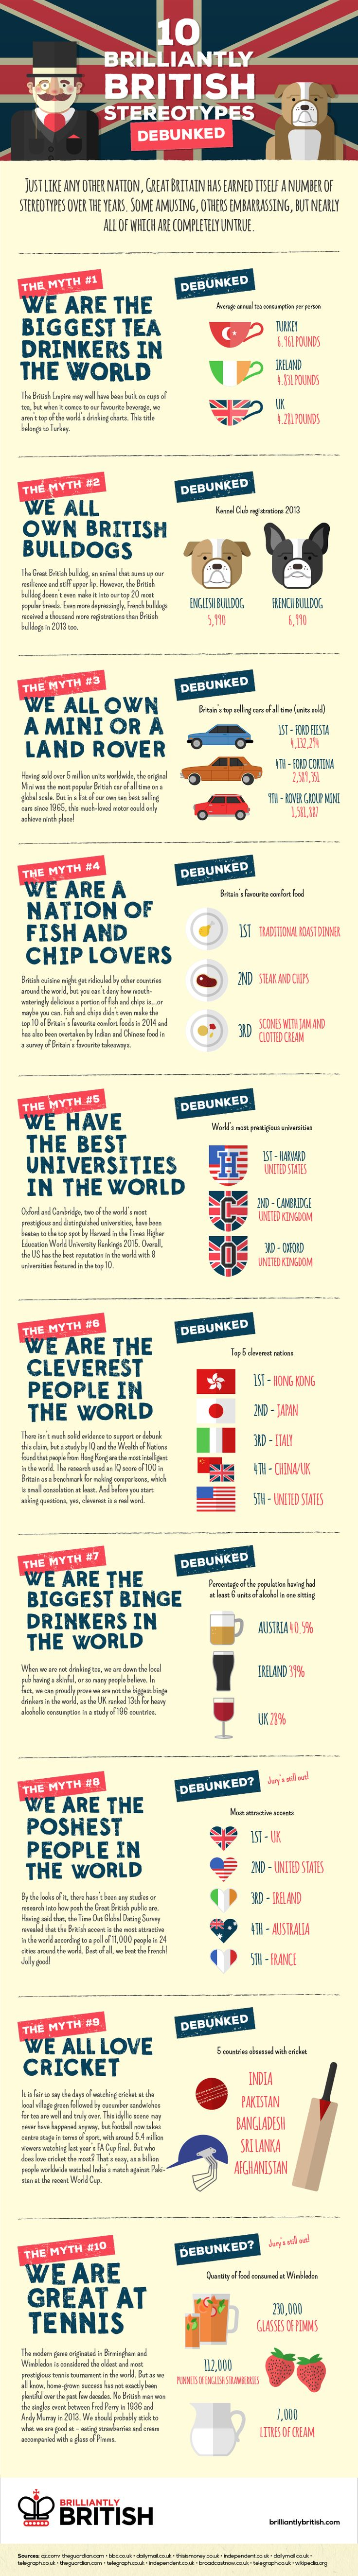 British Culture: 10 Brilliantly British Stereotypes Debunked – Infographic